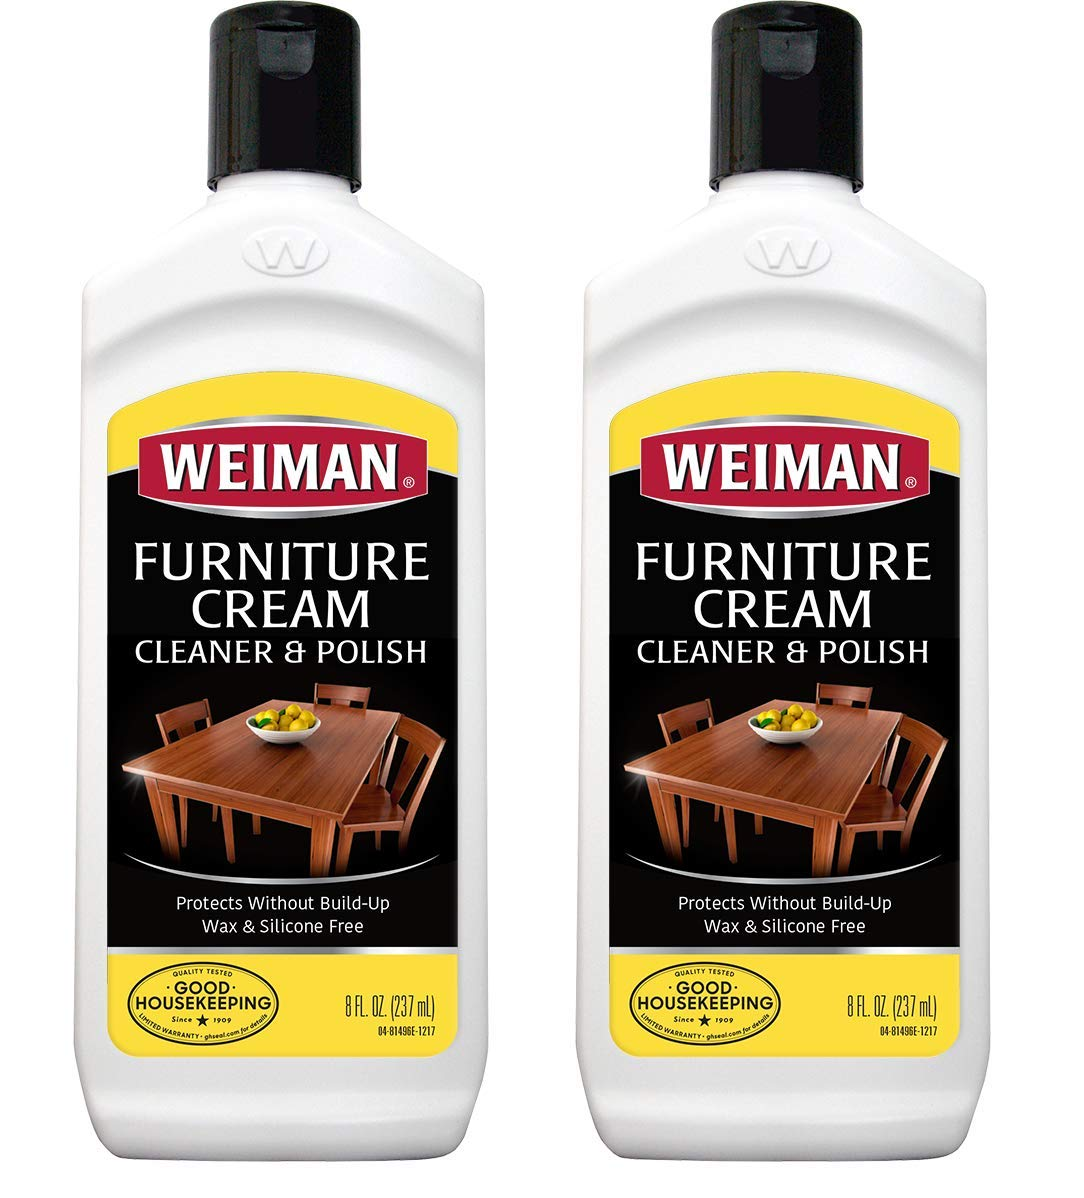 Weiman Wood Cleaner and Polish 8 fl. oz. [2 Pack] Use On Furniture, Wood Table Cleaner, Cabinet Restorer, Conditioner, Polish Weiman Products LLC.